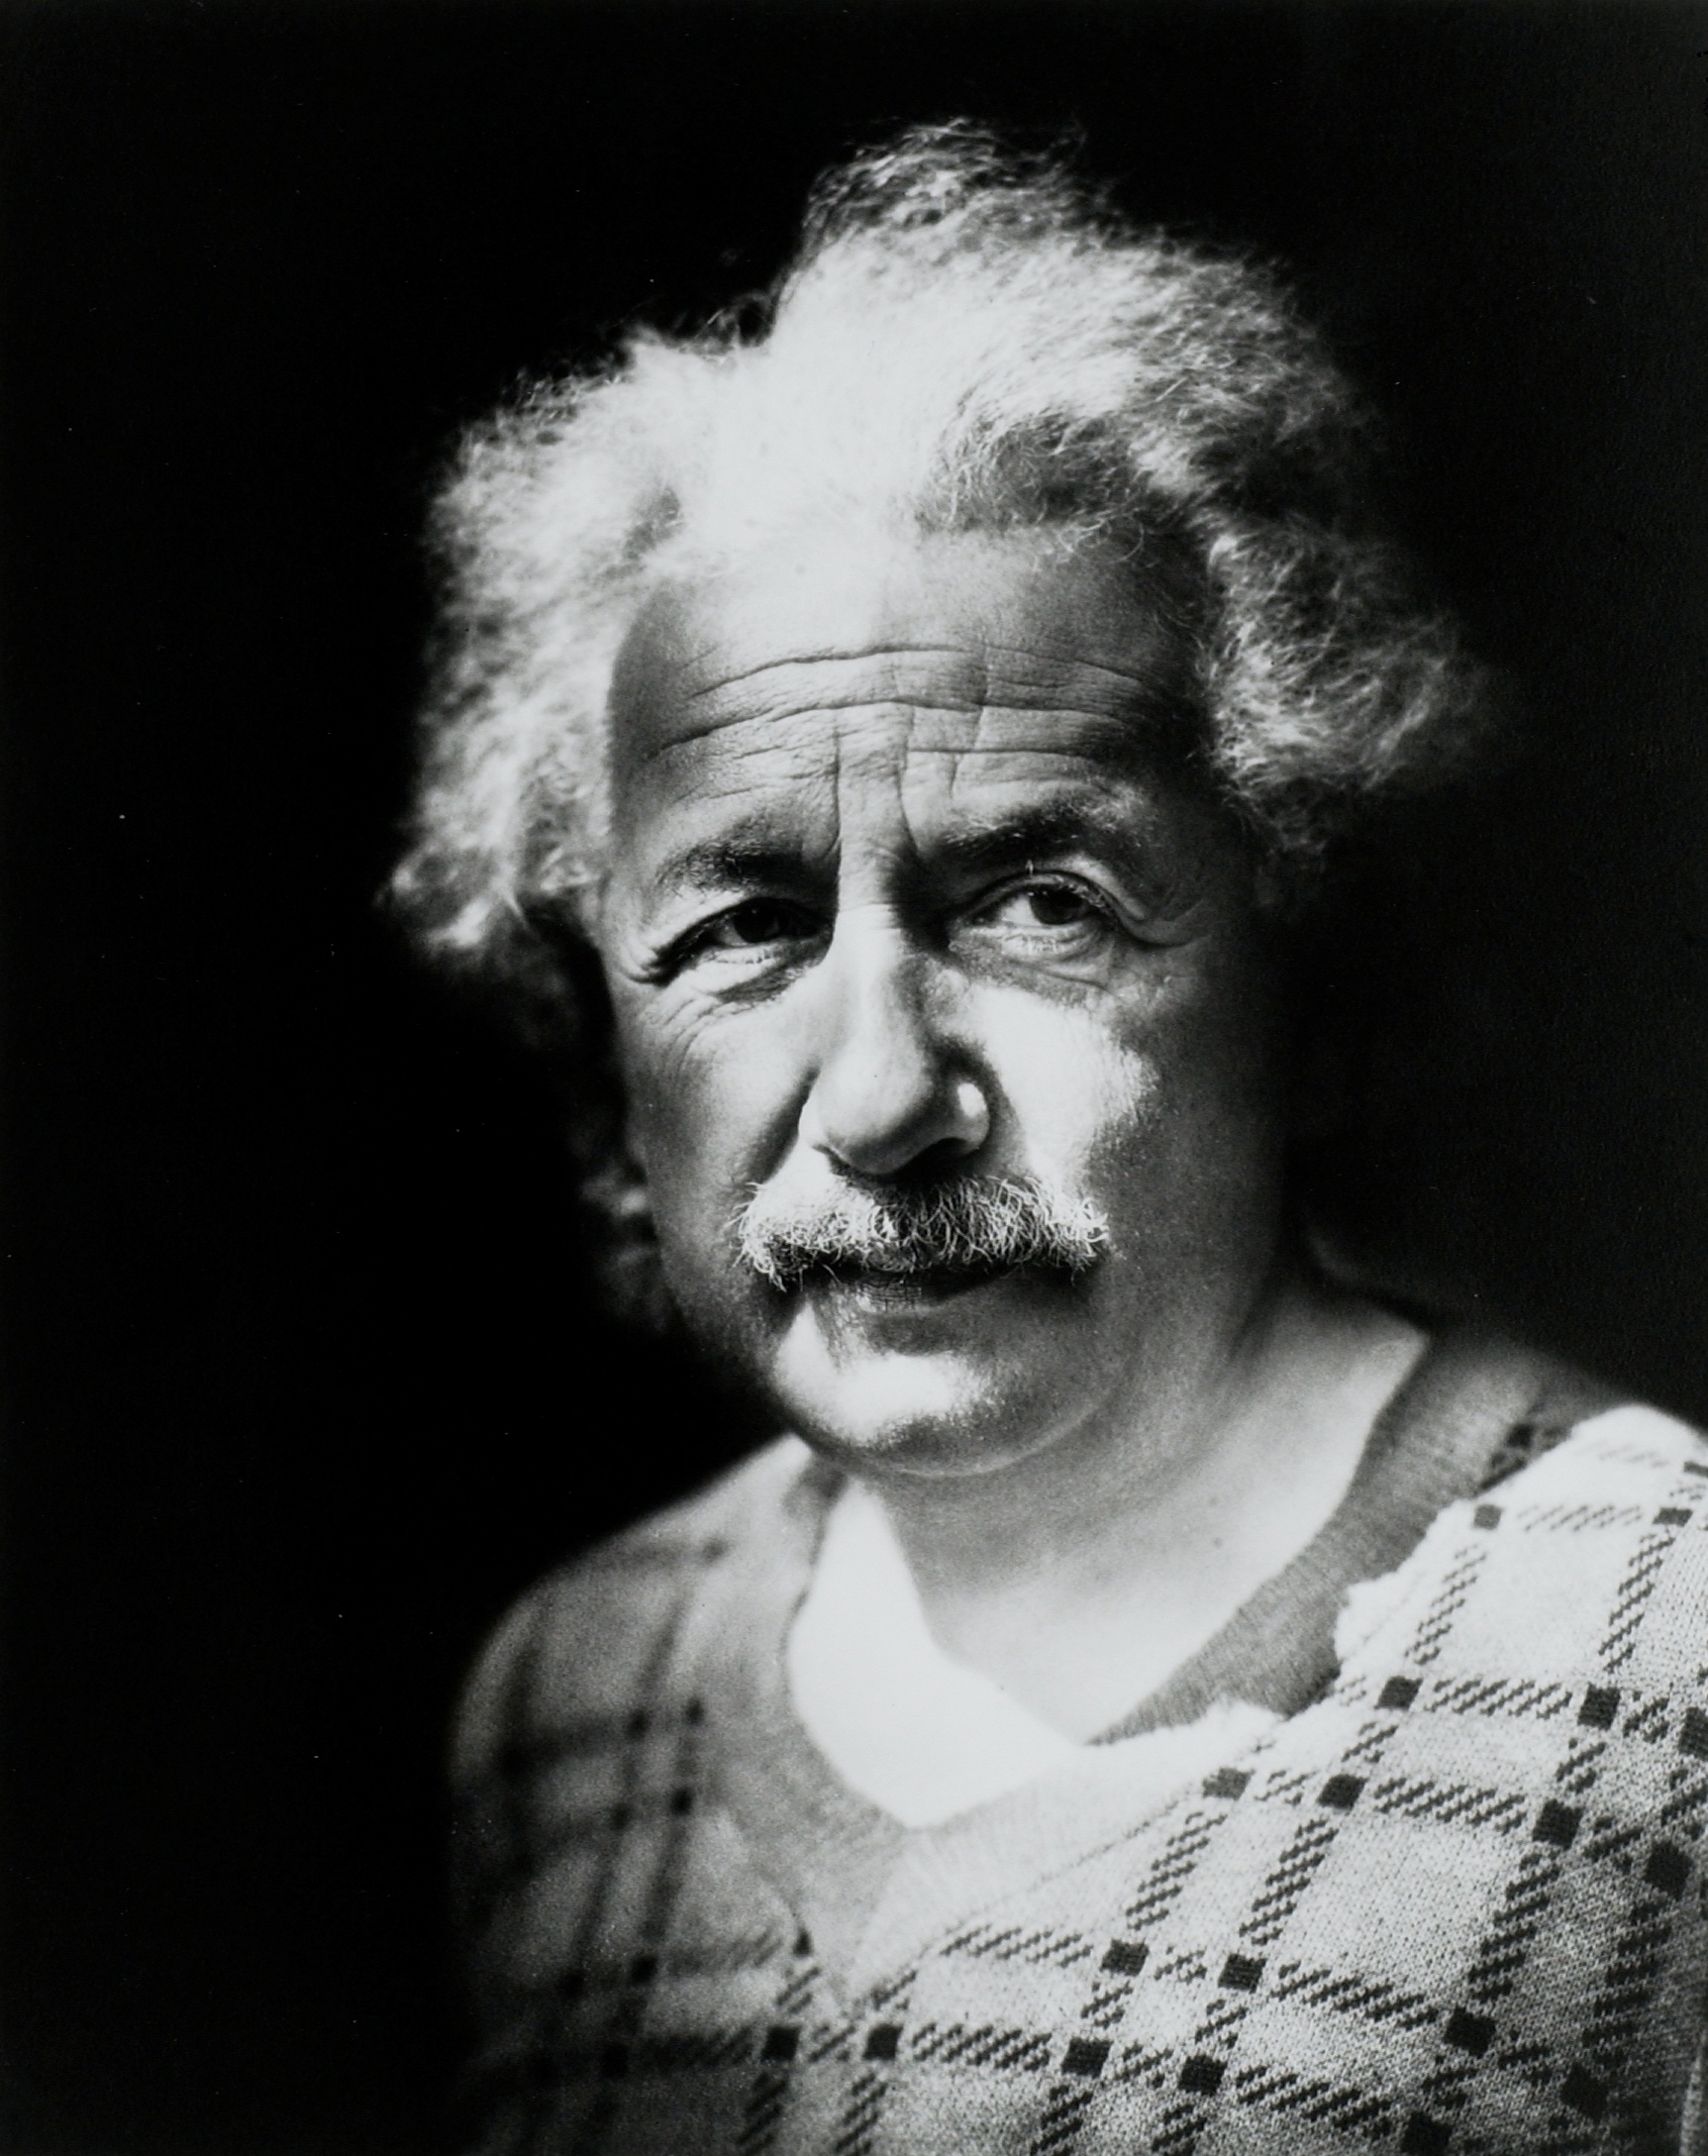 Approaching a Genius: The Einstein Papers Project